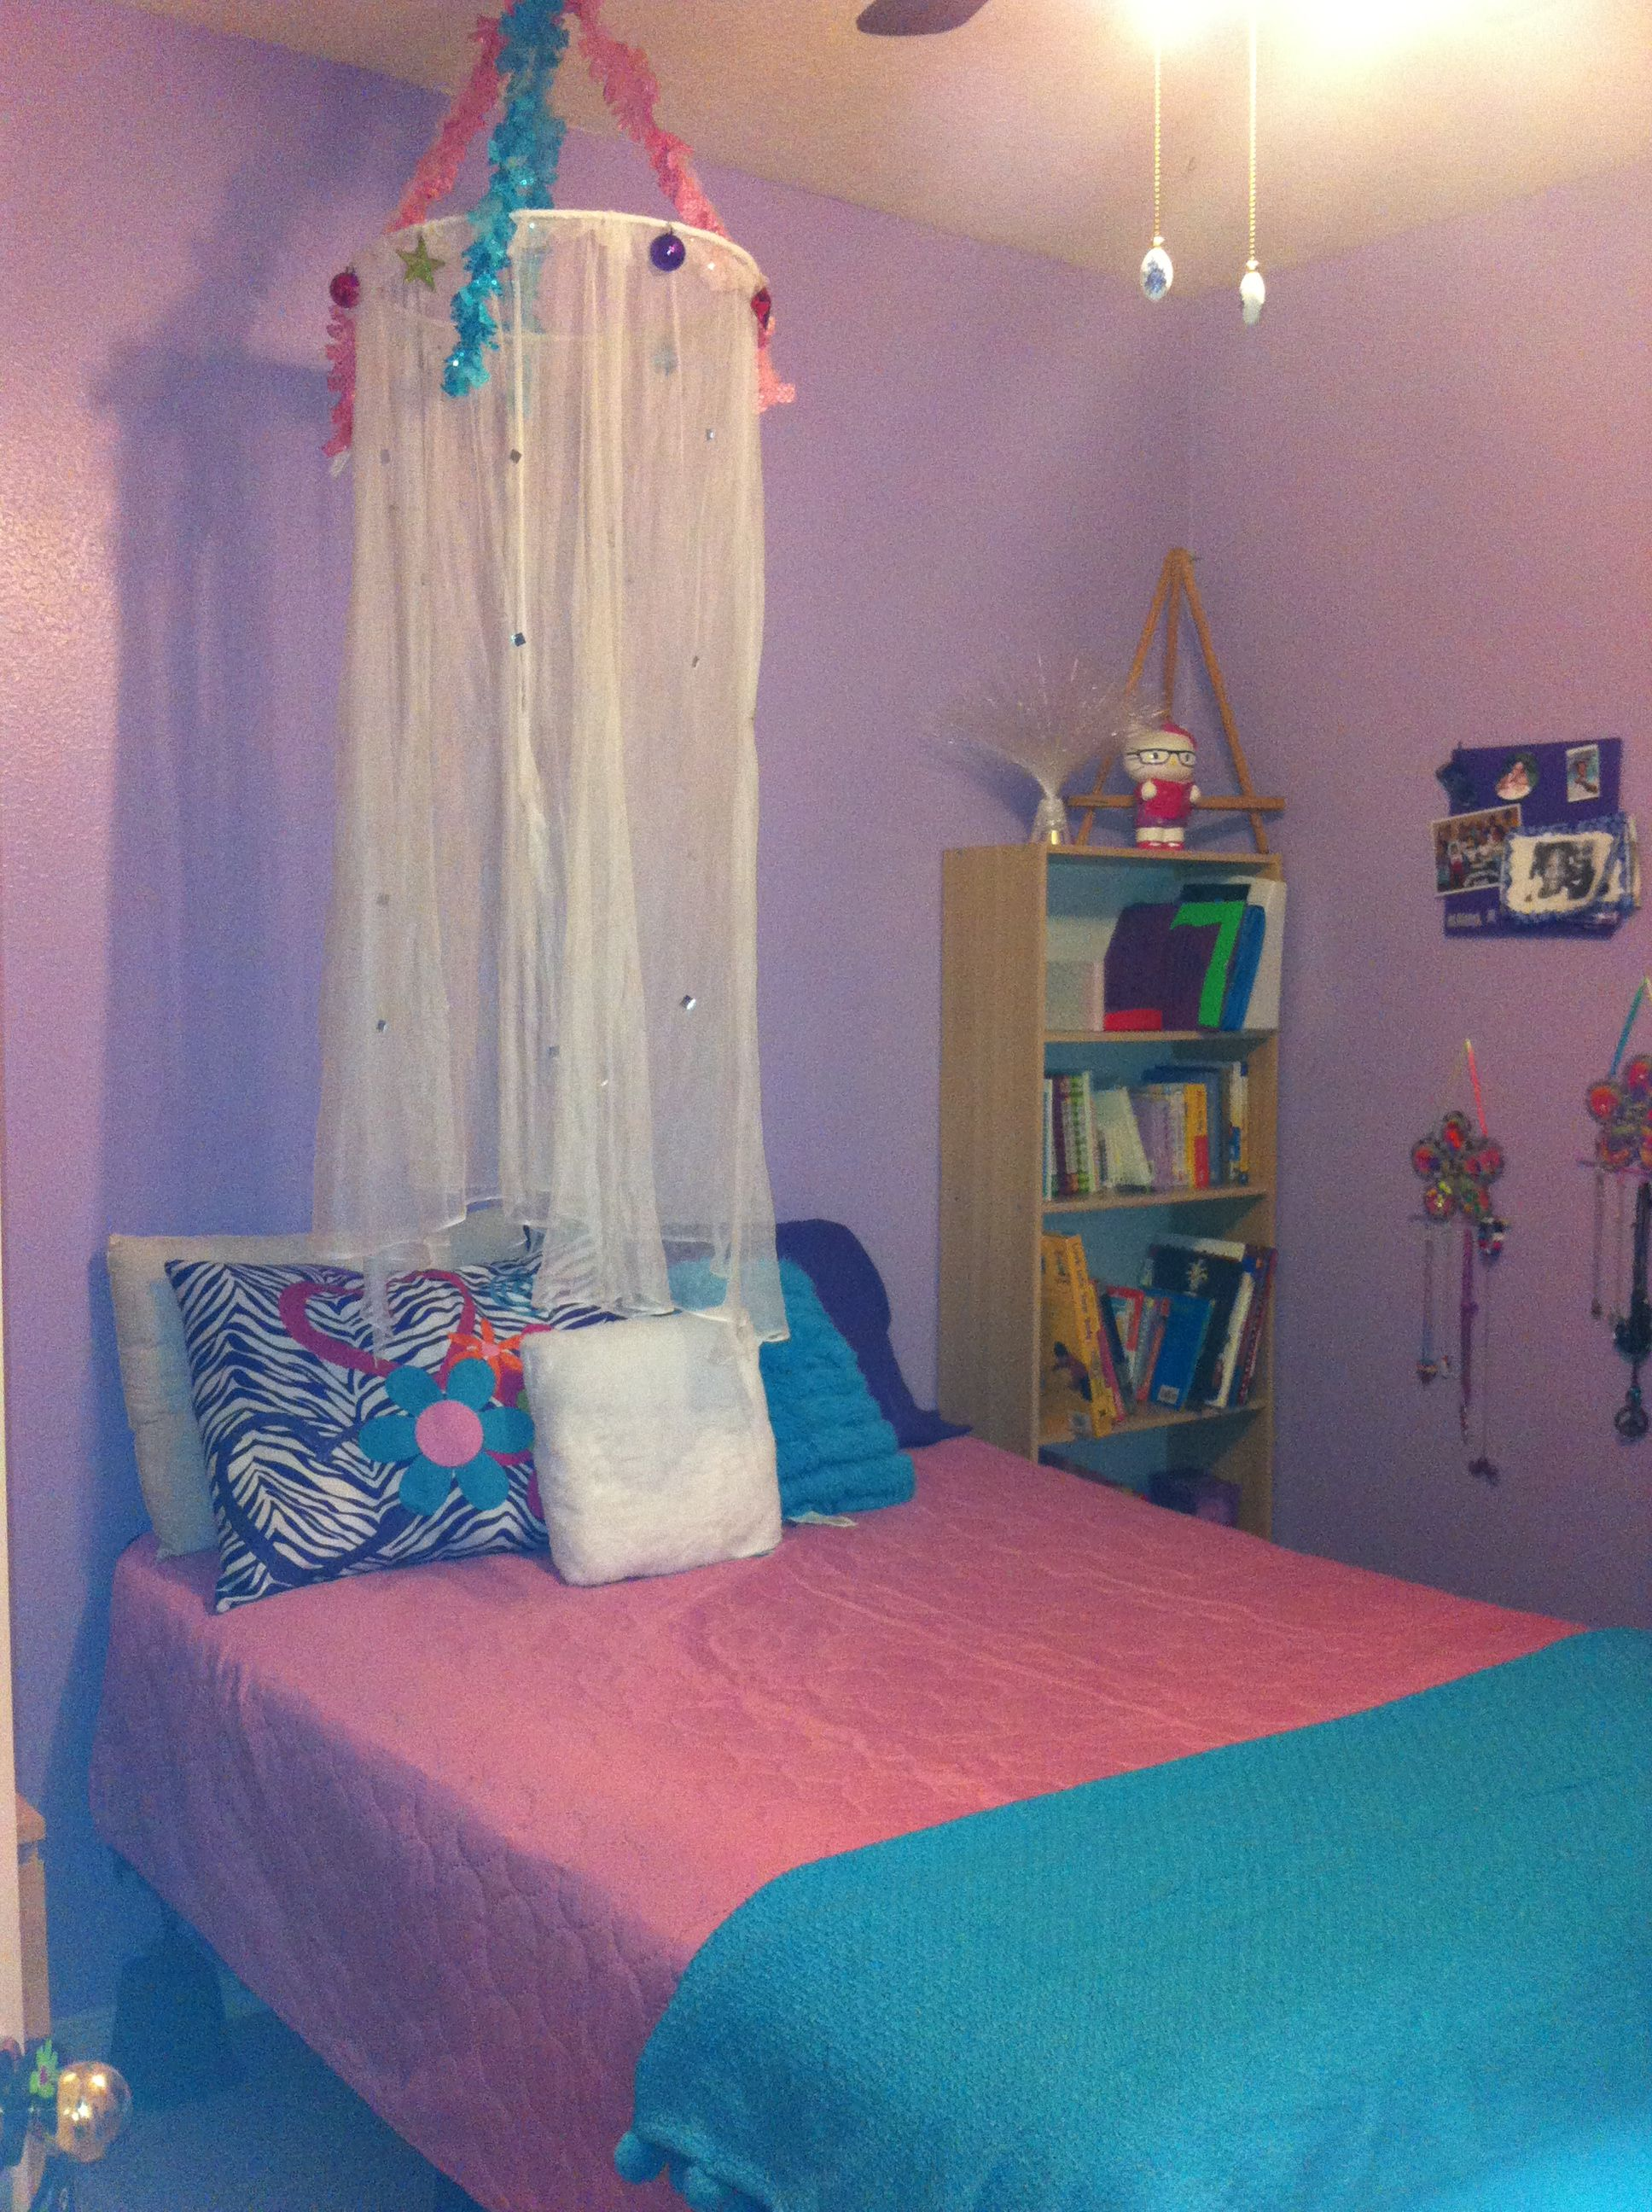 Re Decorated My 11 Year Olds Room Tween Theme Old Room Diy Room Decor For Girls Girls Room Decor